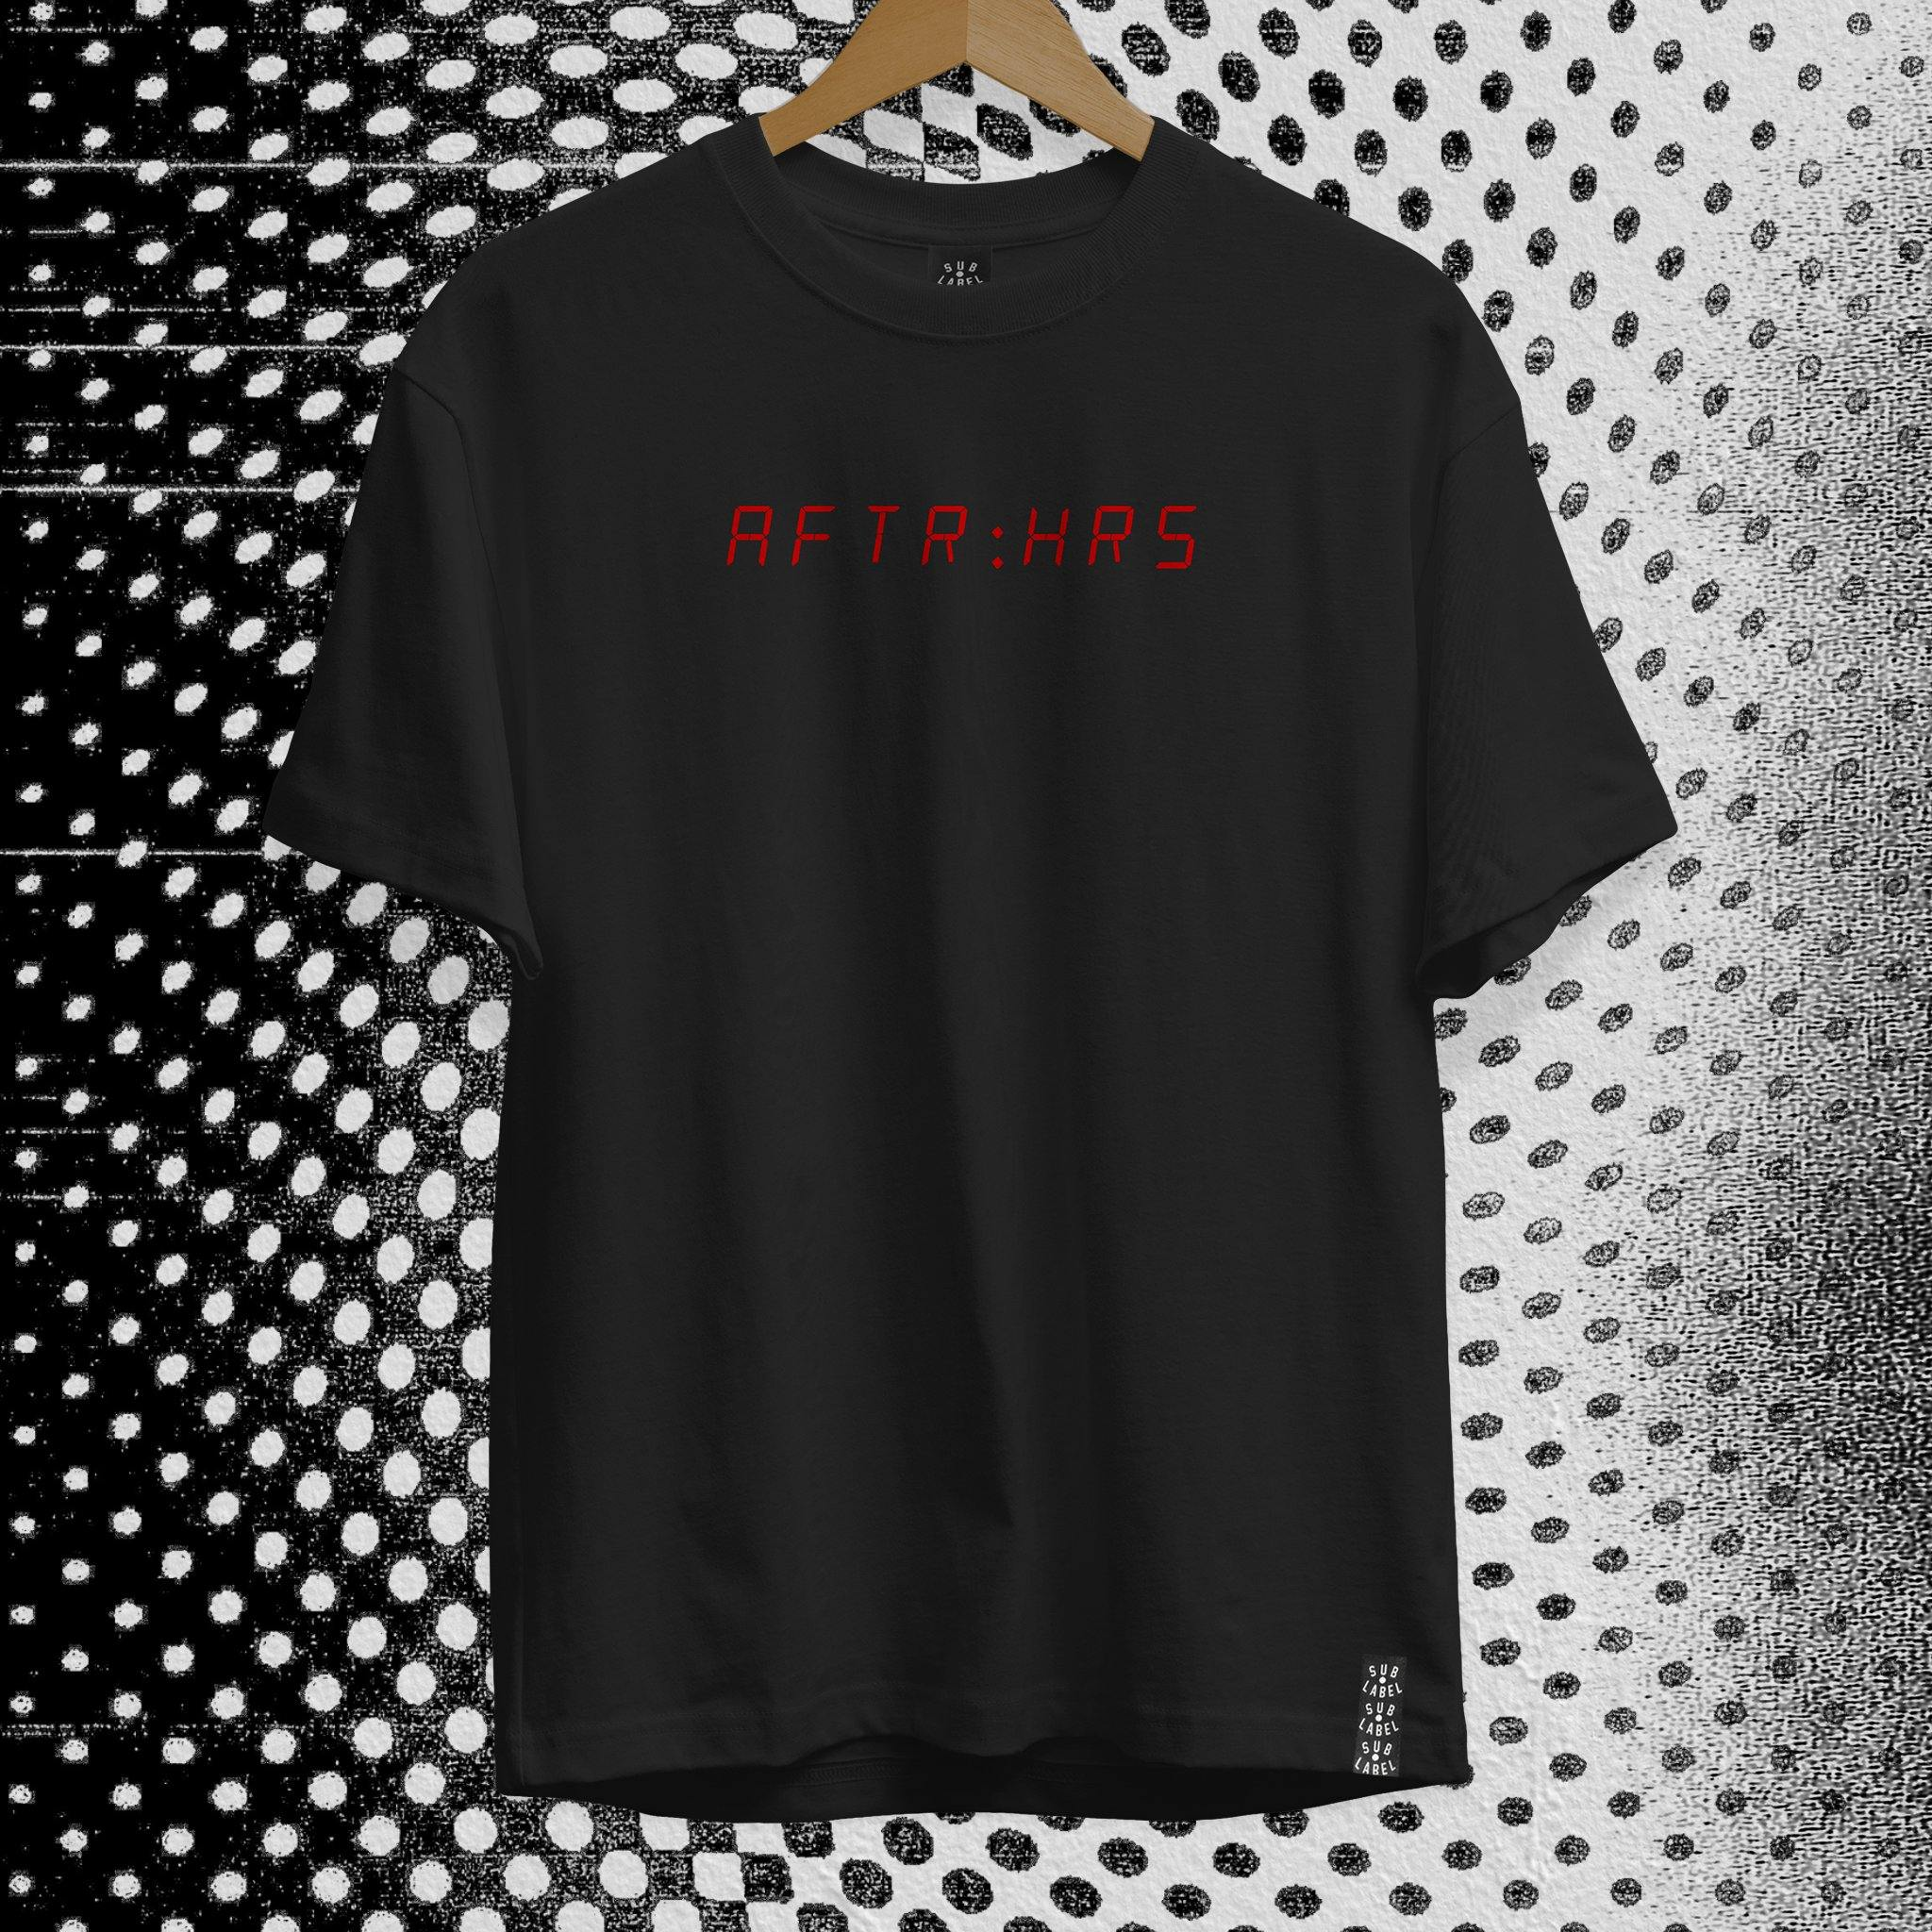 sublabel_afterhours_techno_rave_club_edm_tshirt_black